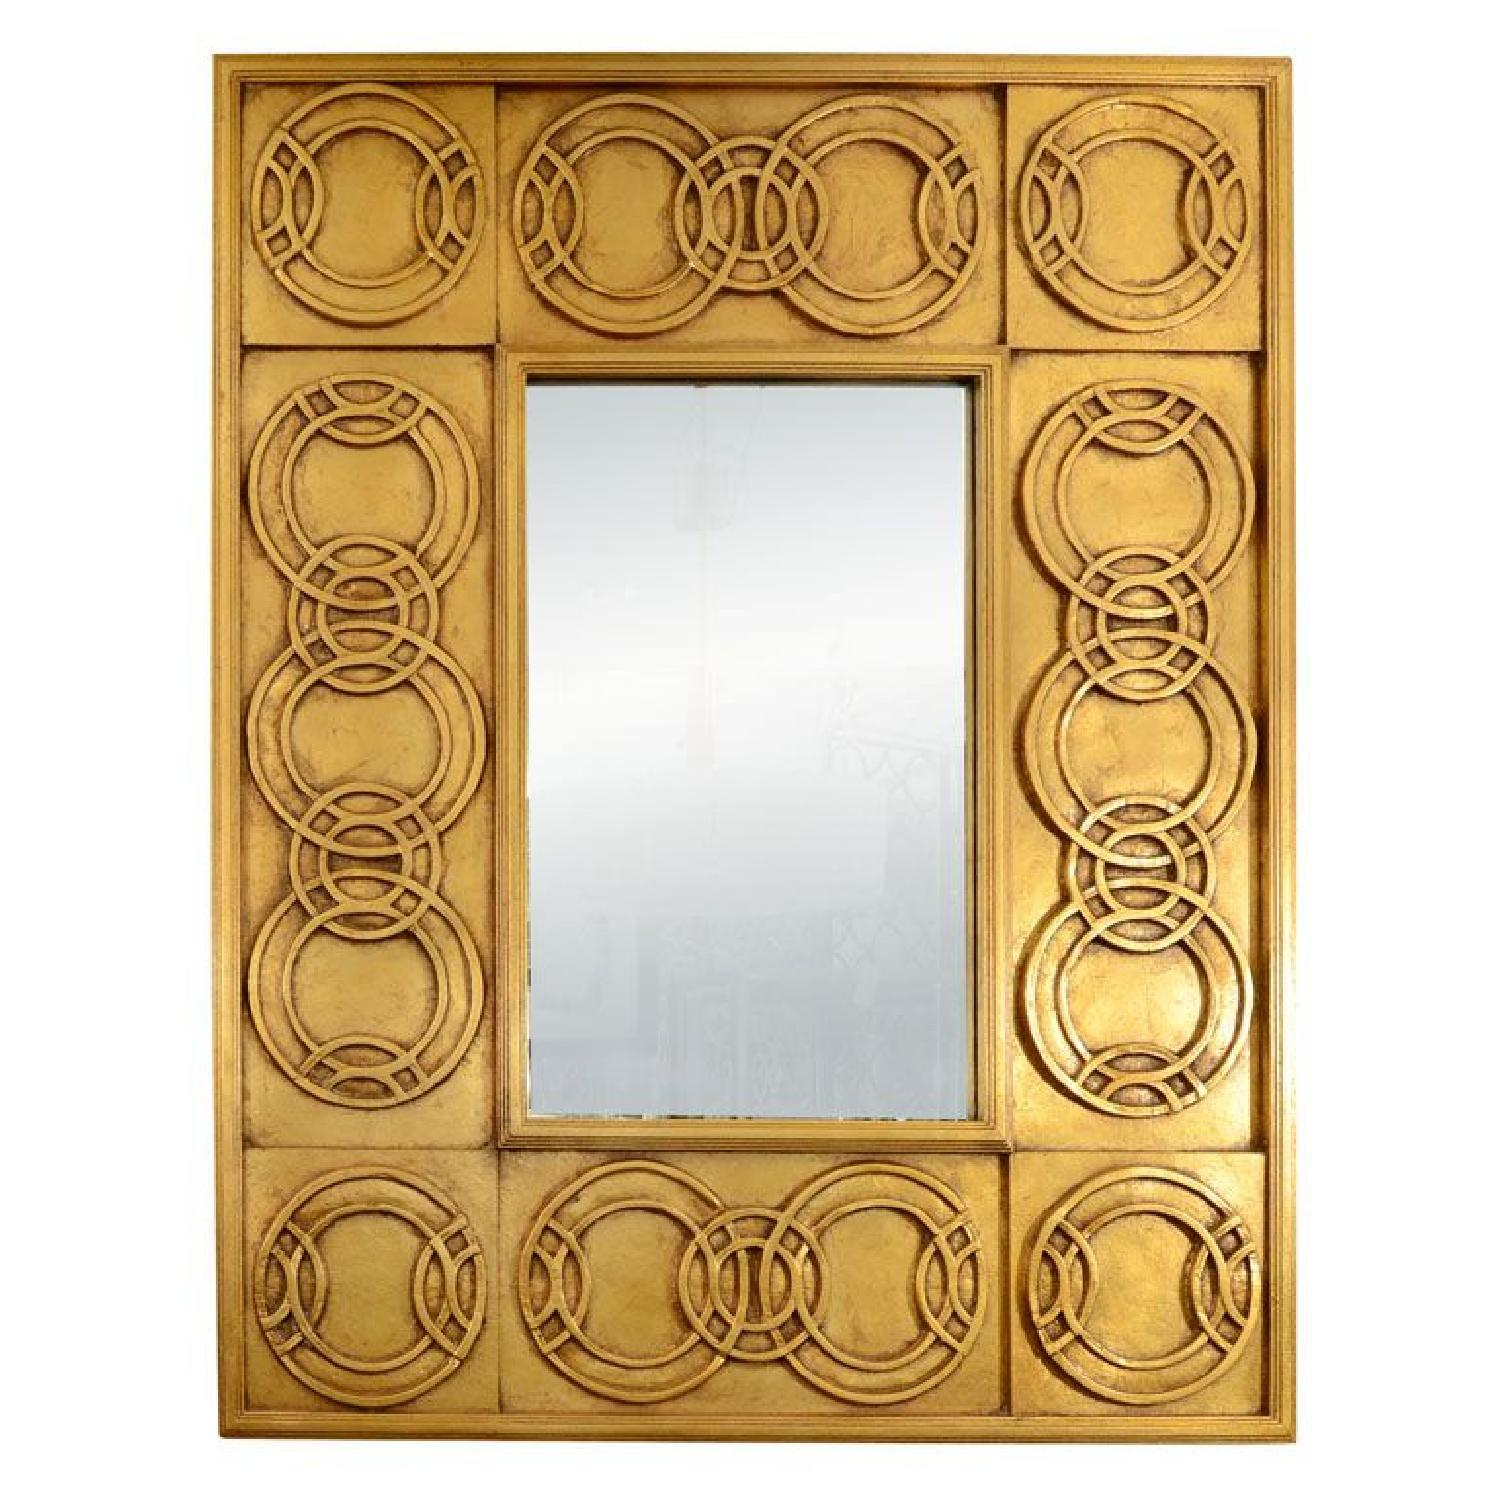 Vintage Large Gold Leaf Motif Mirror by Jay Spectre